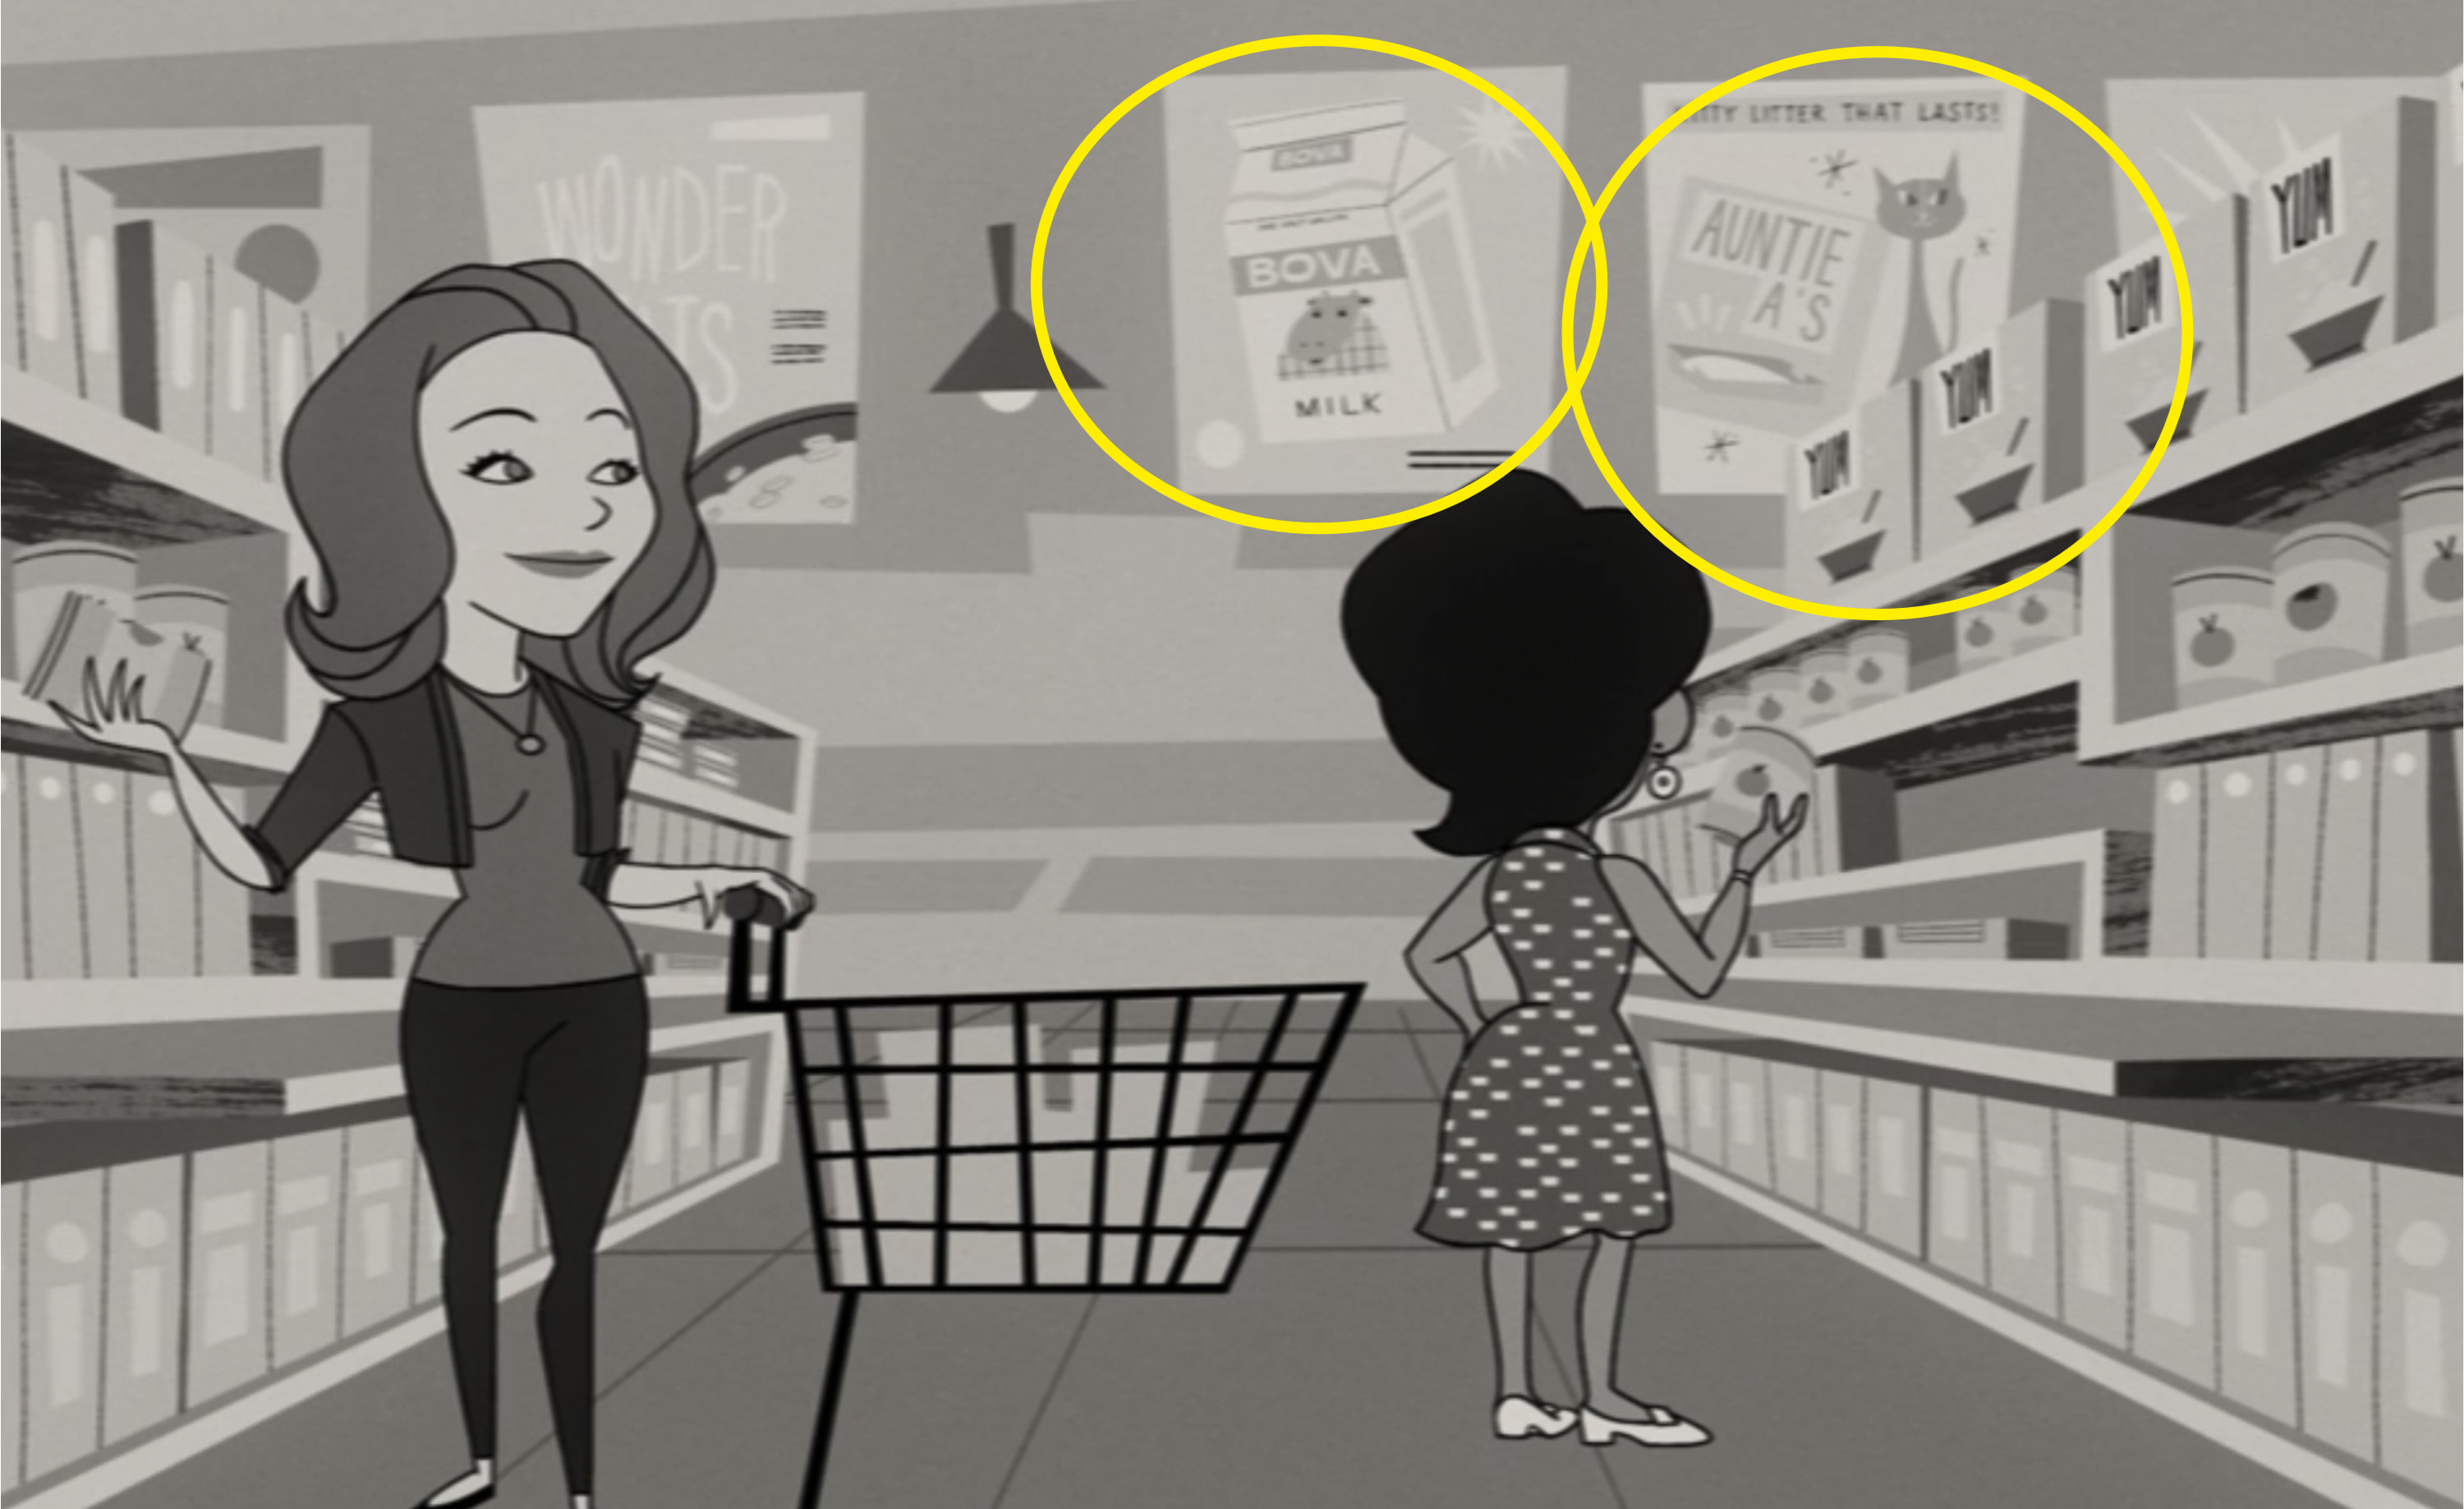 """Animated Wanda standing in a supermarket aisle with """"Bova milk"""" and """"Auntie A's kitty litter"""" signs in the background"""